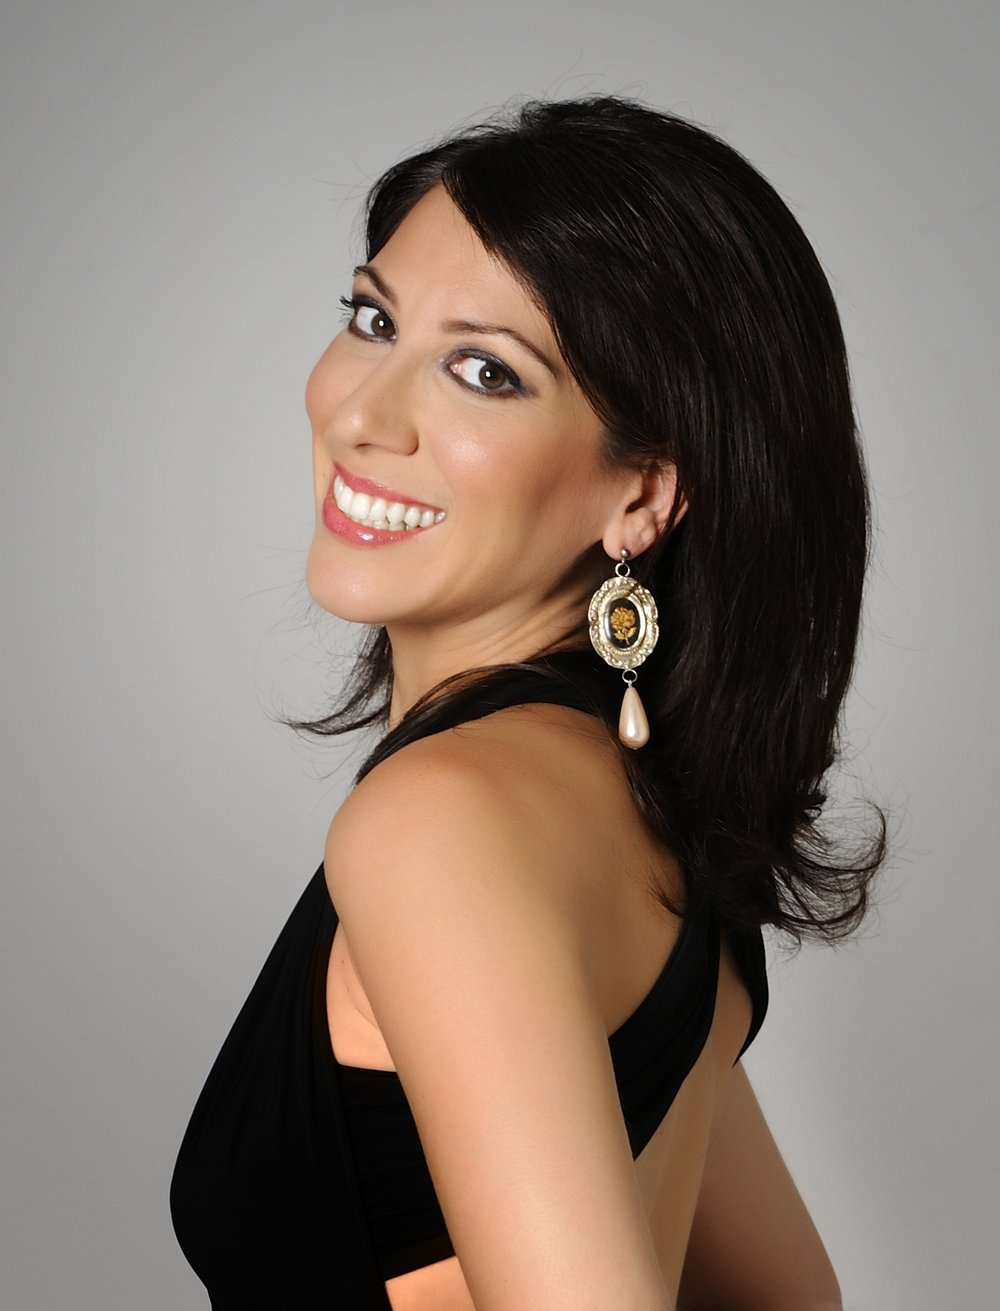 Eleni Calenos Headshot APPROVED.JPG